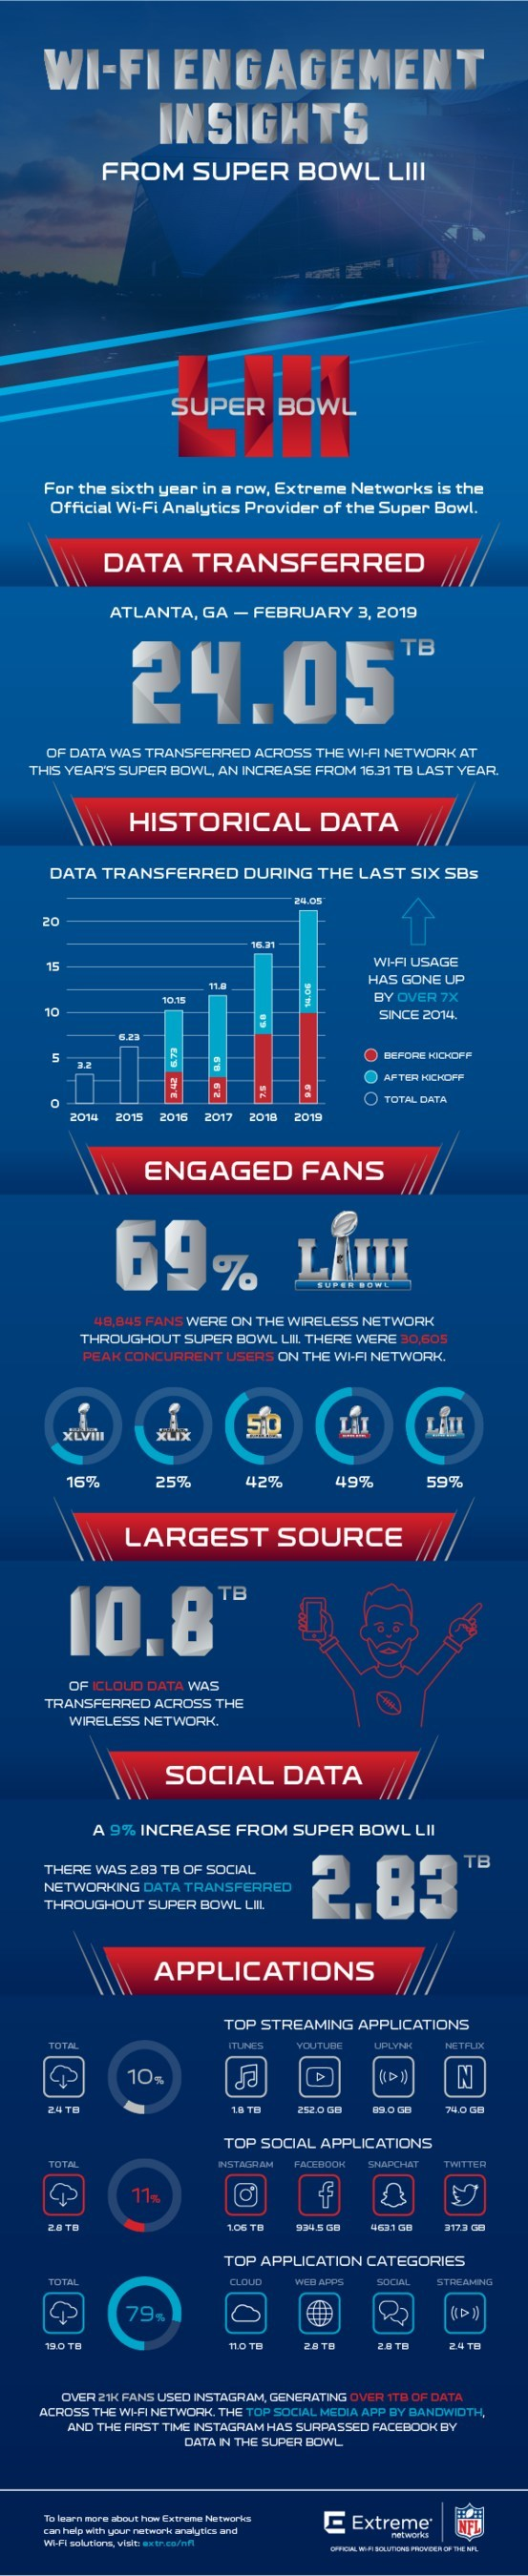 Wi-Fi engagement insights from Super Bowl LIII from Extreme Networks, the Official Wi-Fi Solutions provider for the NFL.